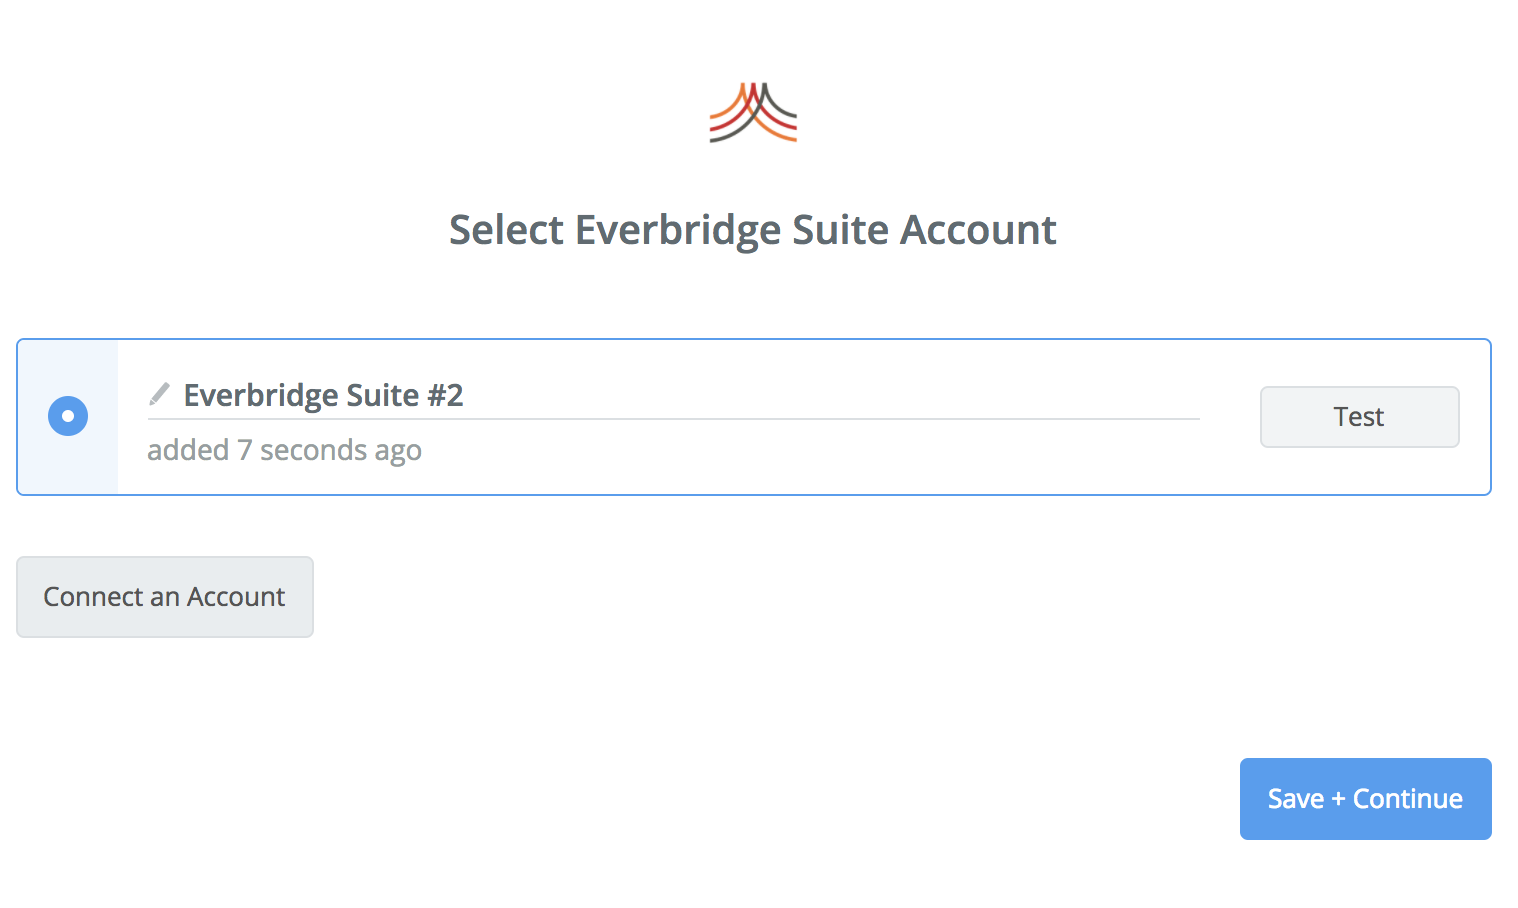 Everbridge Suite connection successfull